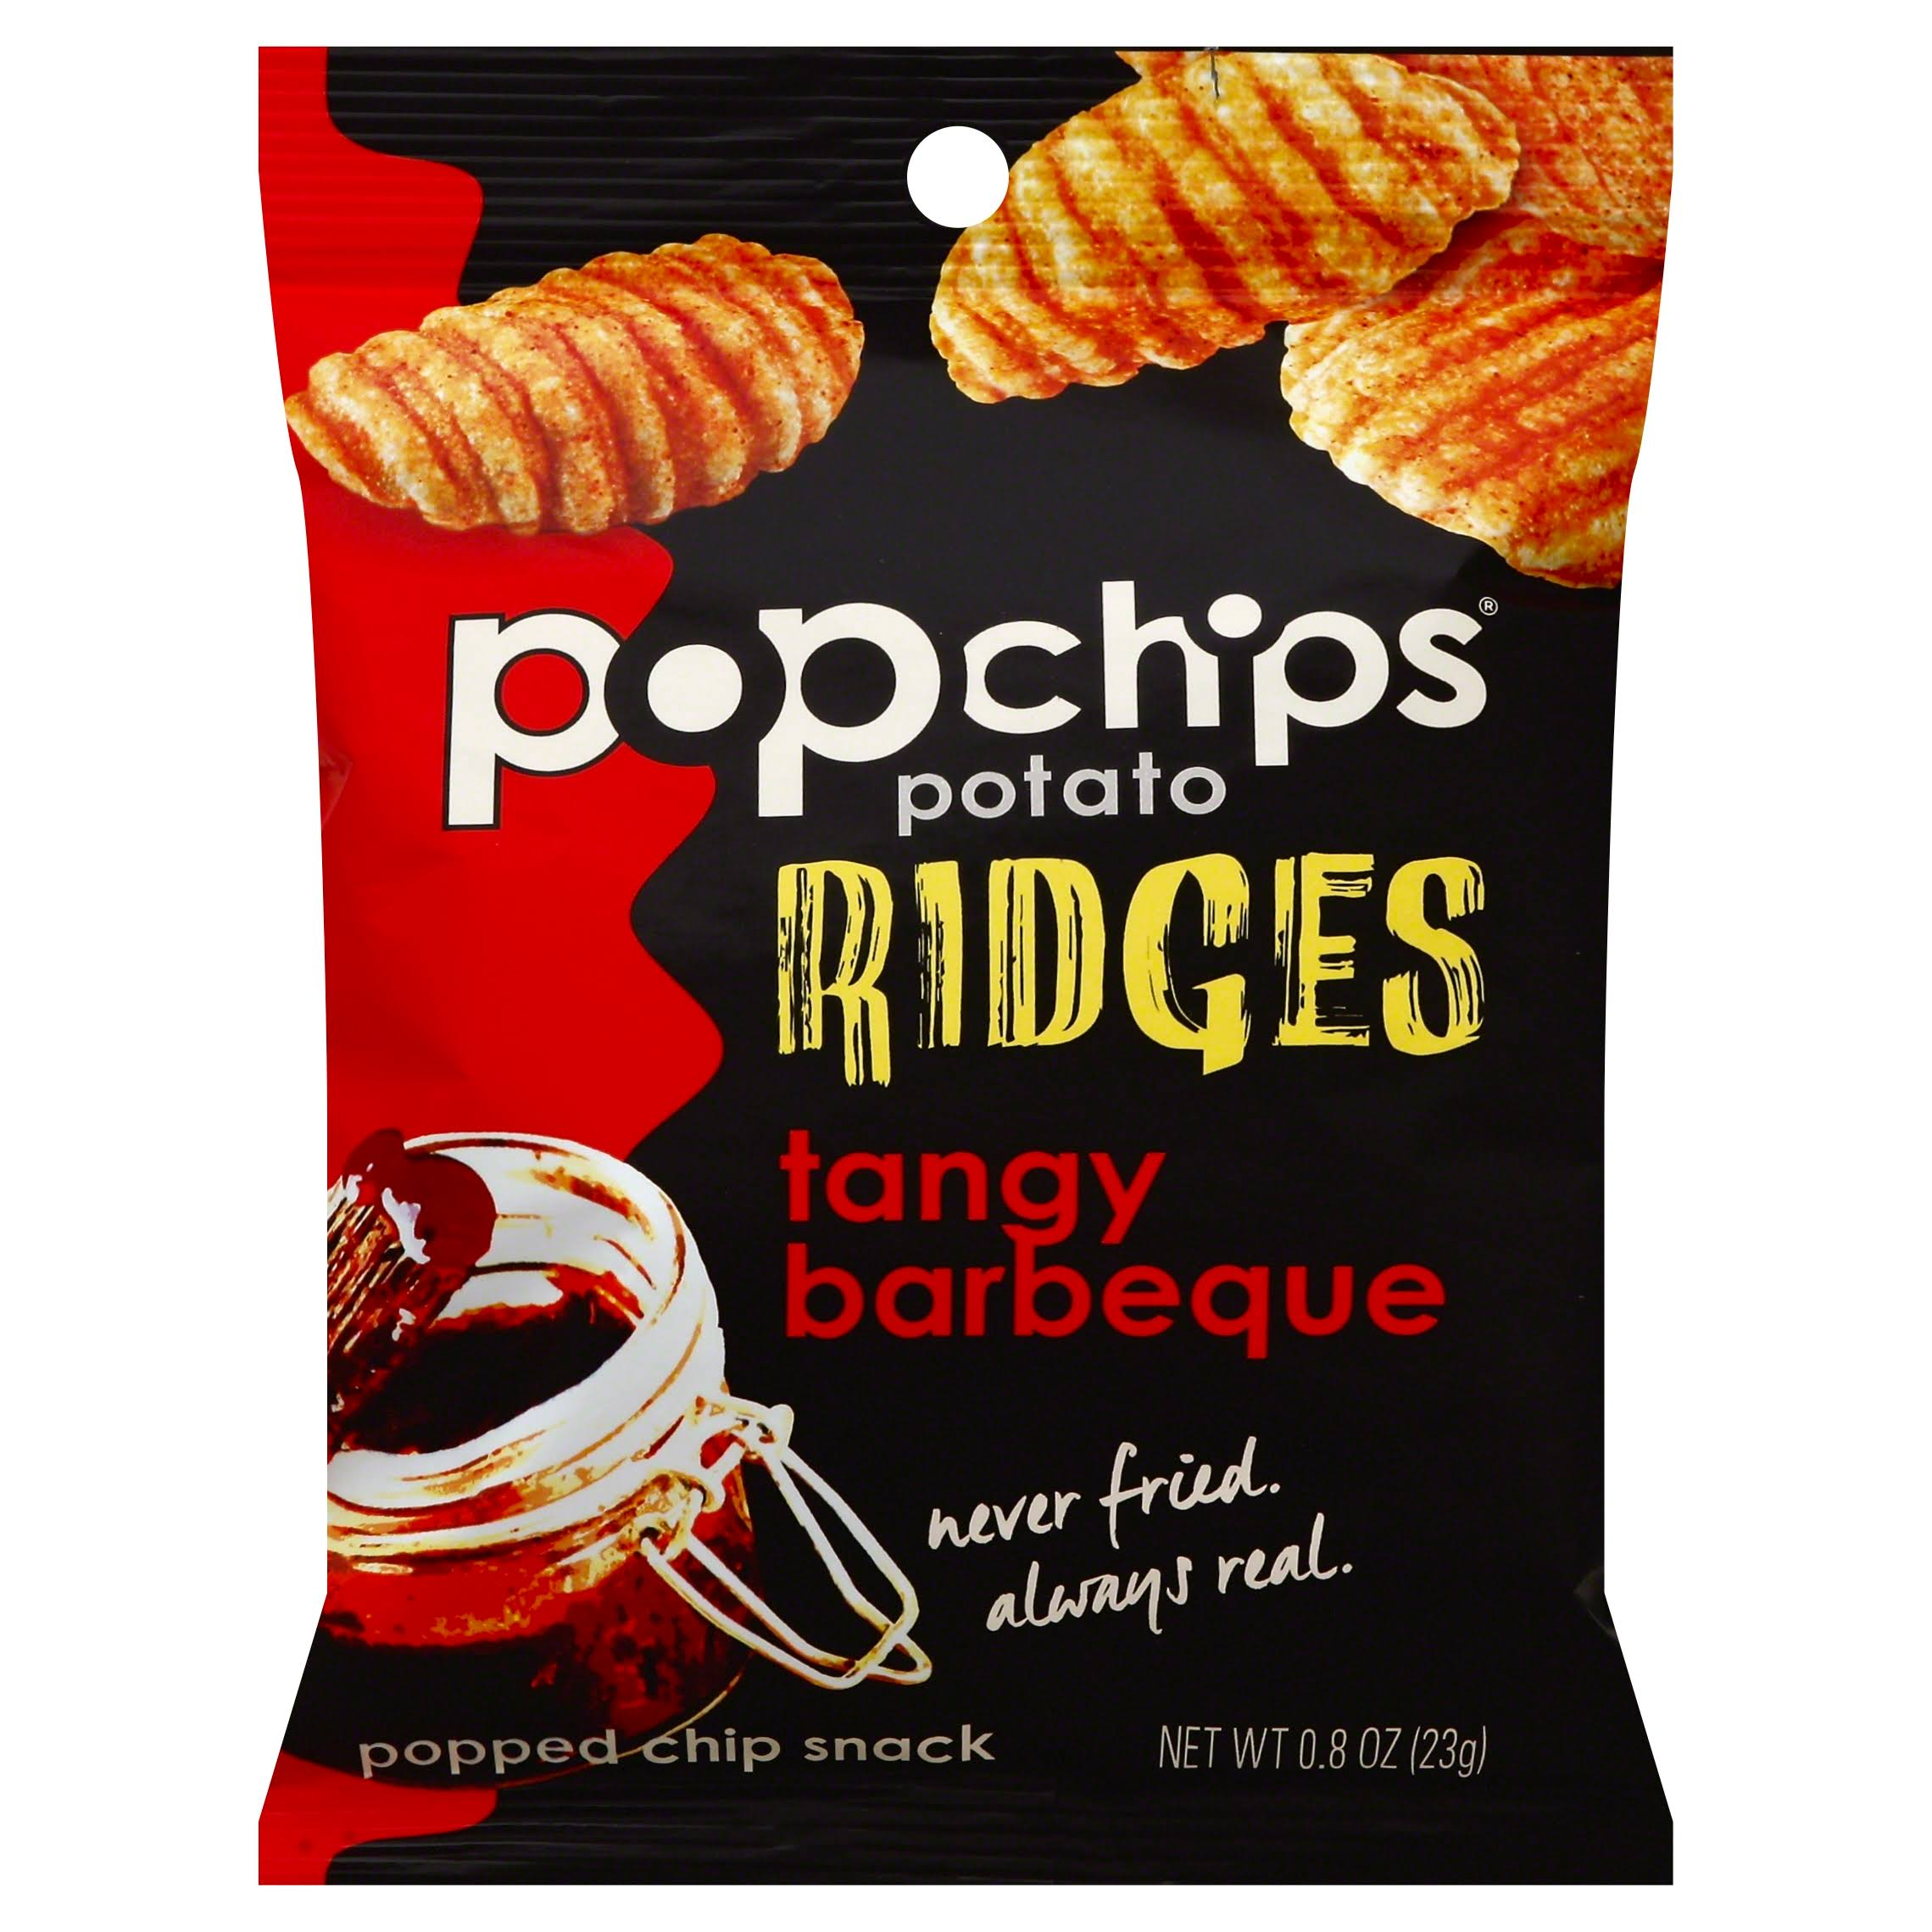 Pop Chips Potato Ridges Chips - Tangy Barbeque, 23g